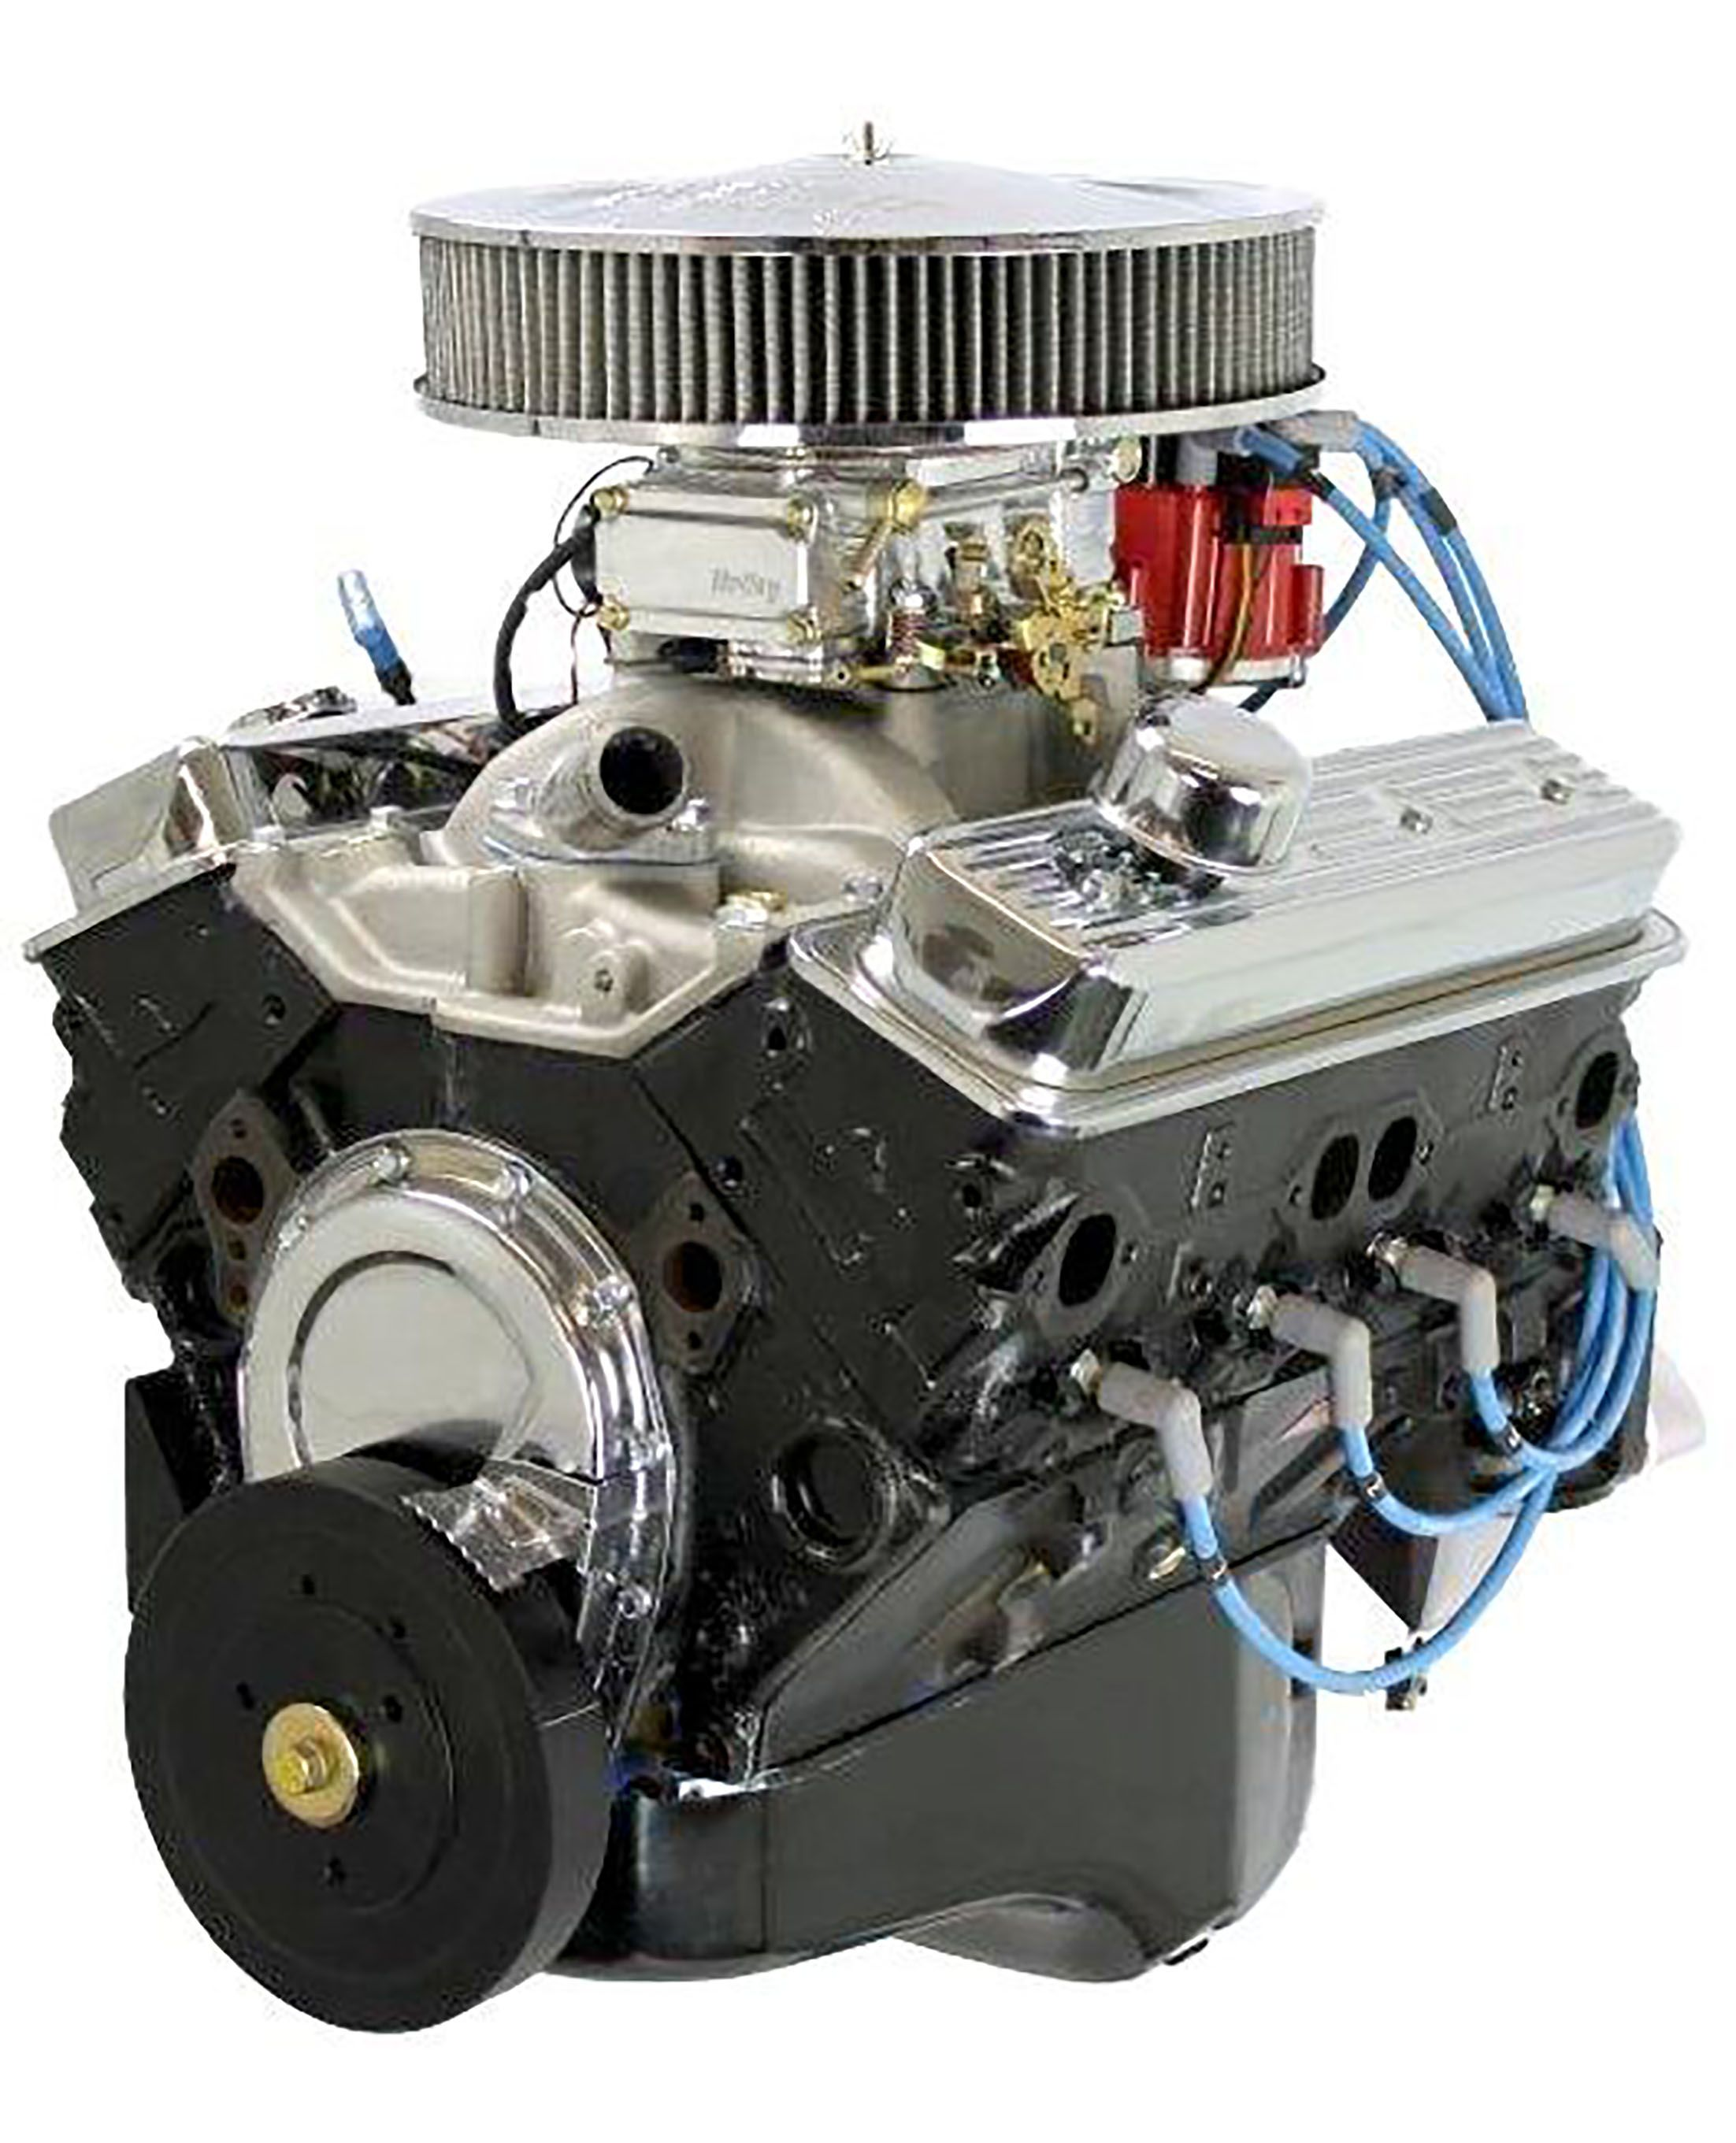 Blueprint Engines Gm 350ci Crate Engine Crate Engines Blueprint Engines Crates